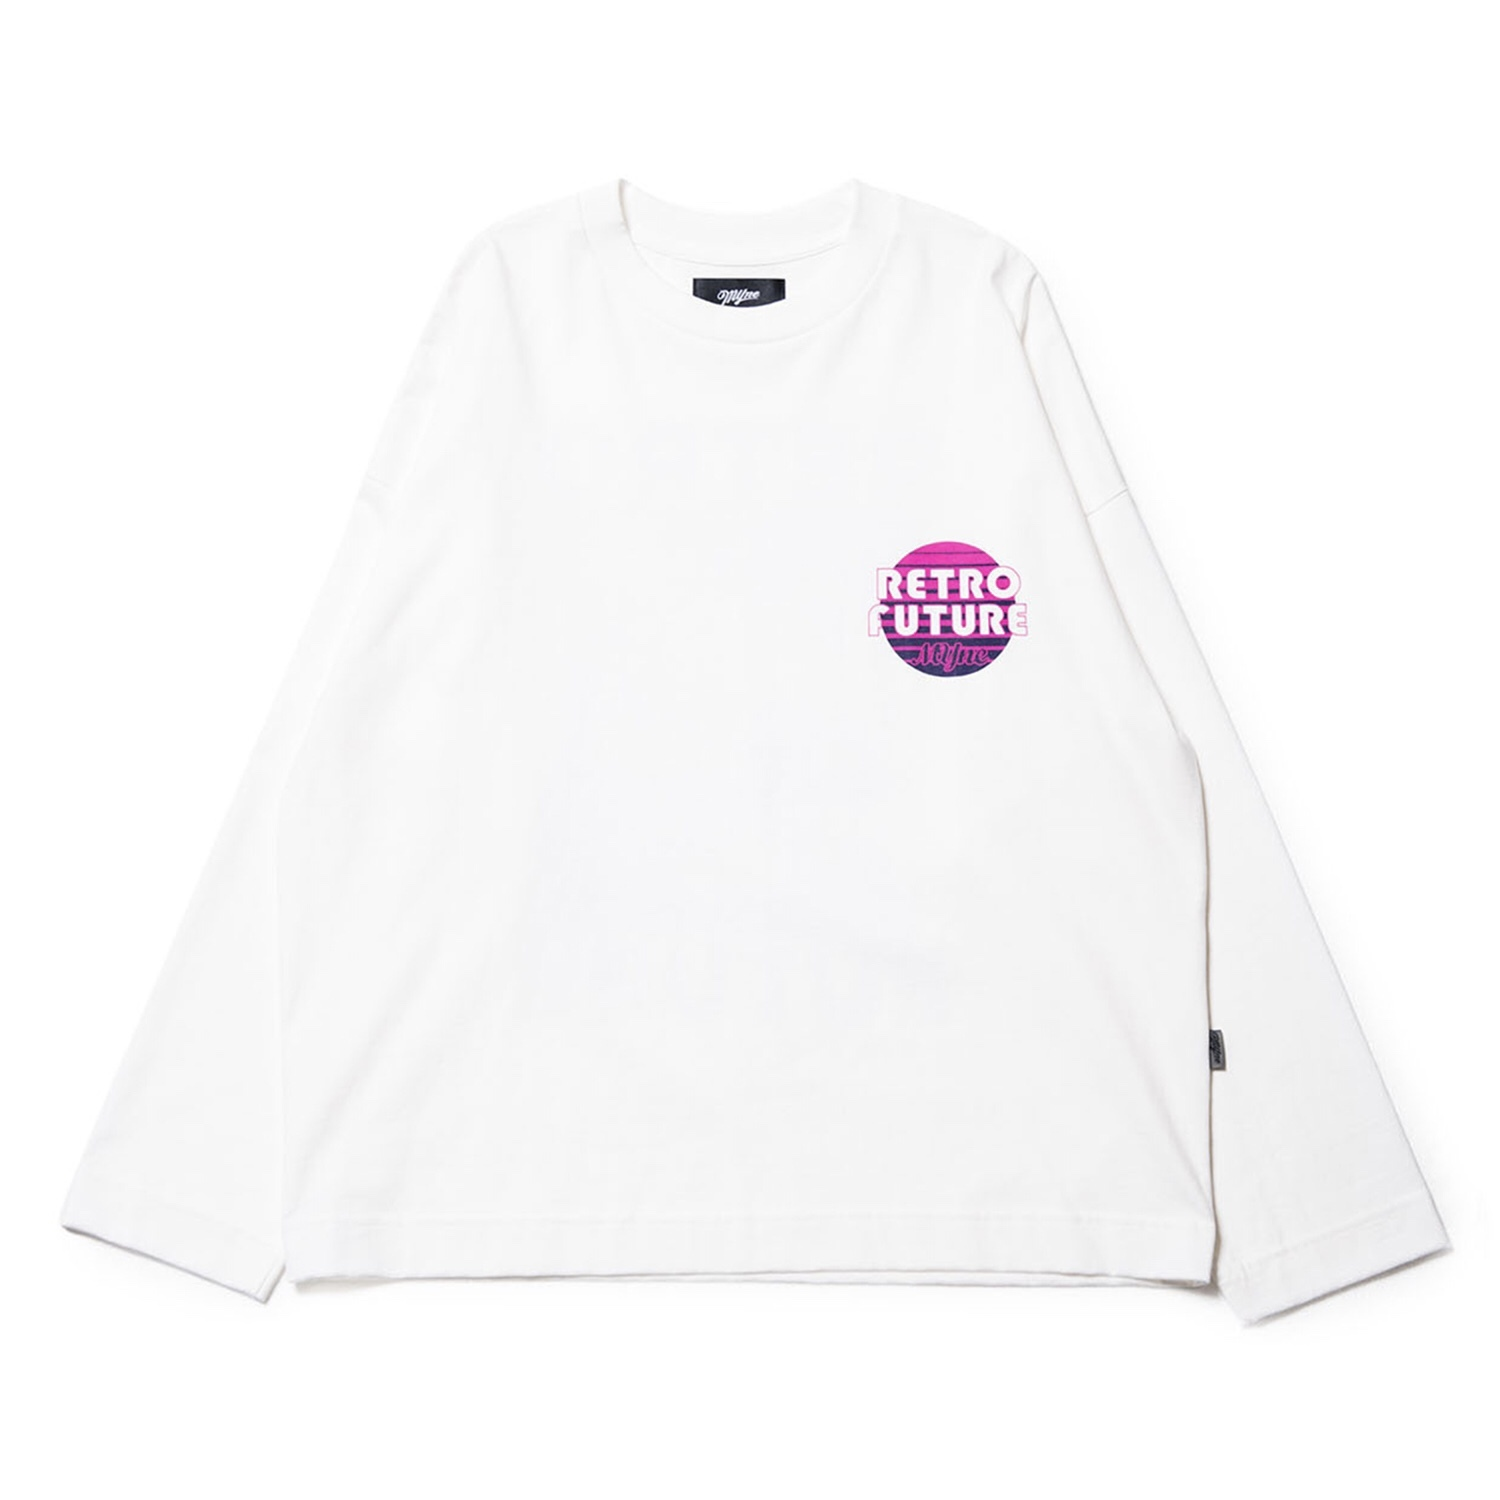 RETRO FUTURE L/S T-shirt / WHITE - 画像1